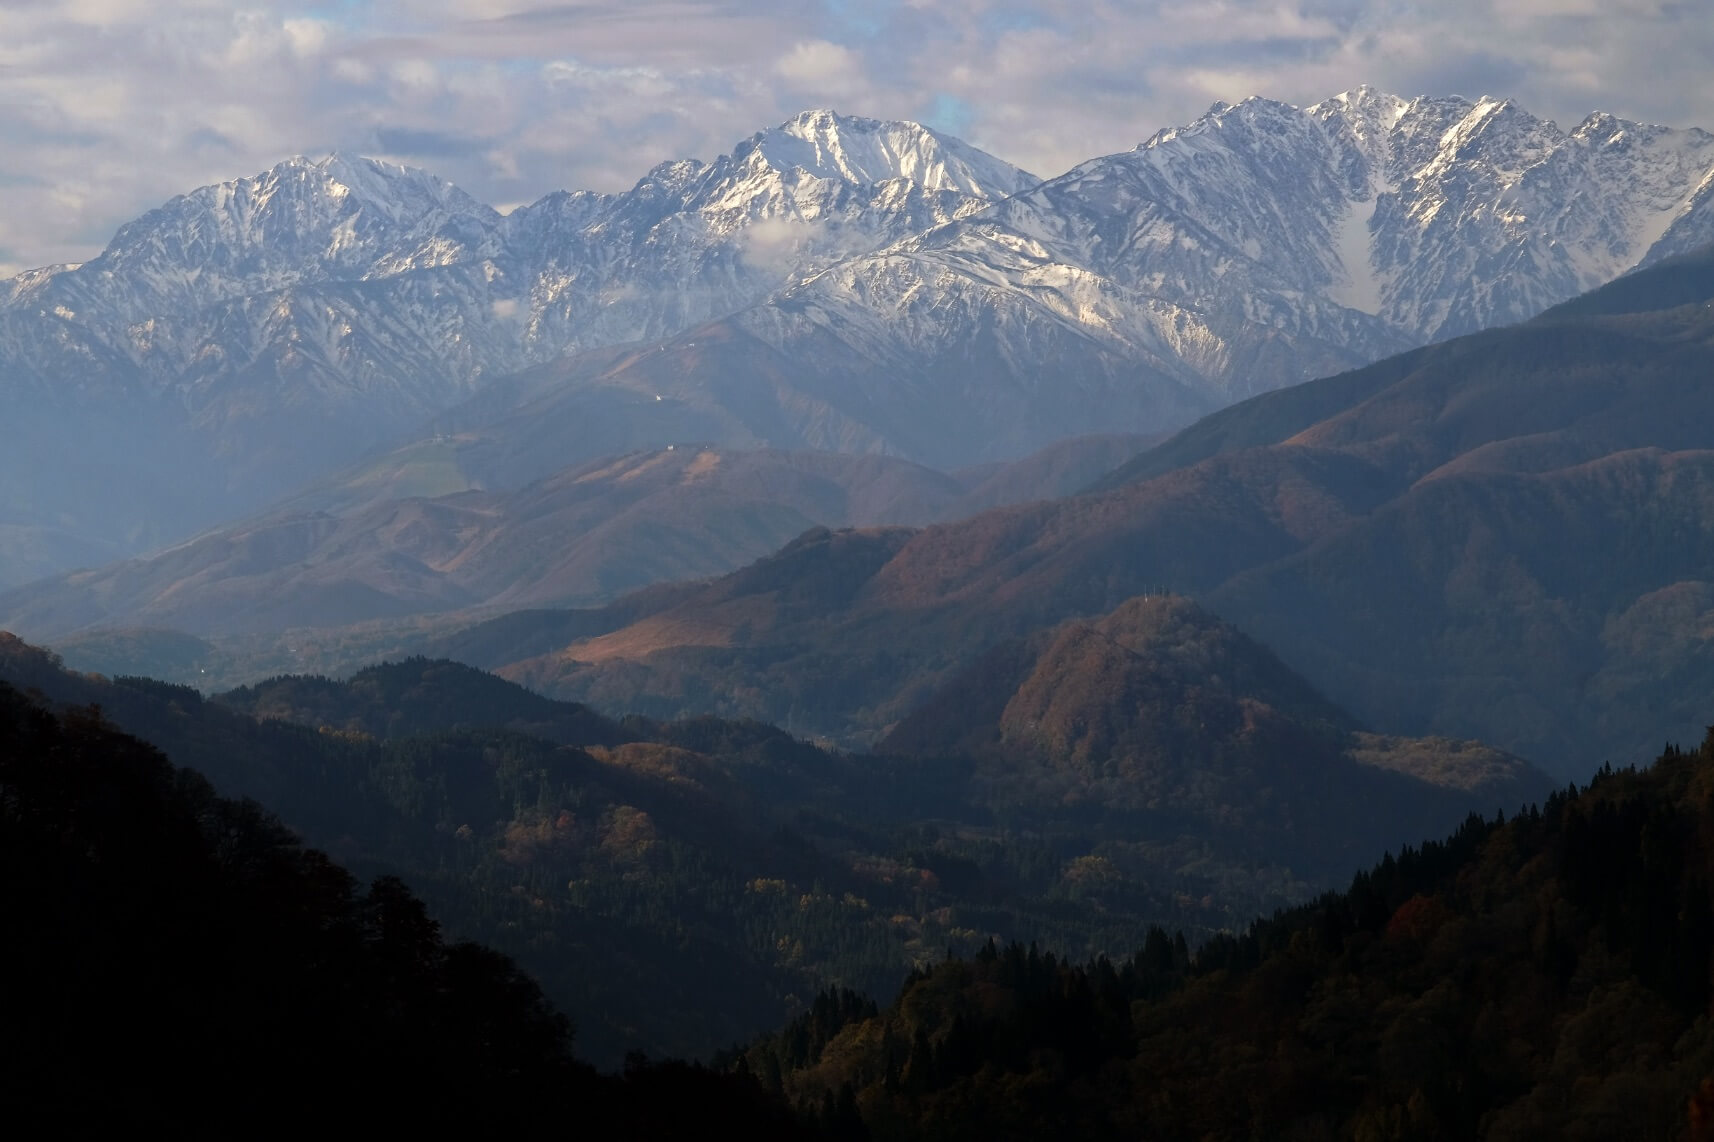 The Northern Alps in November from Otari Village, Nagano